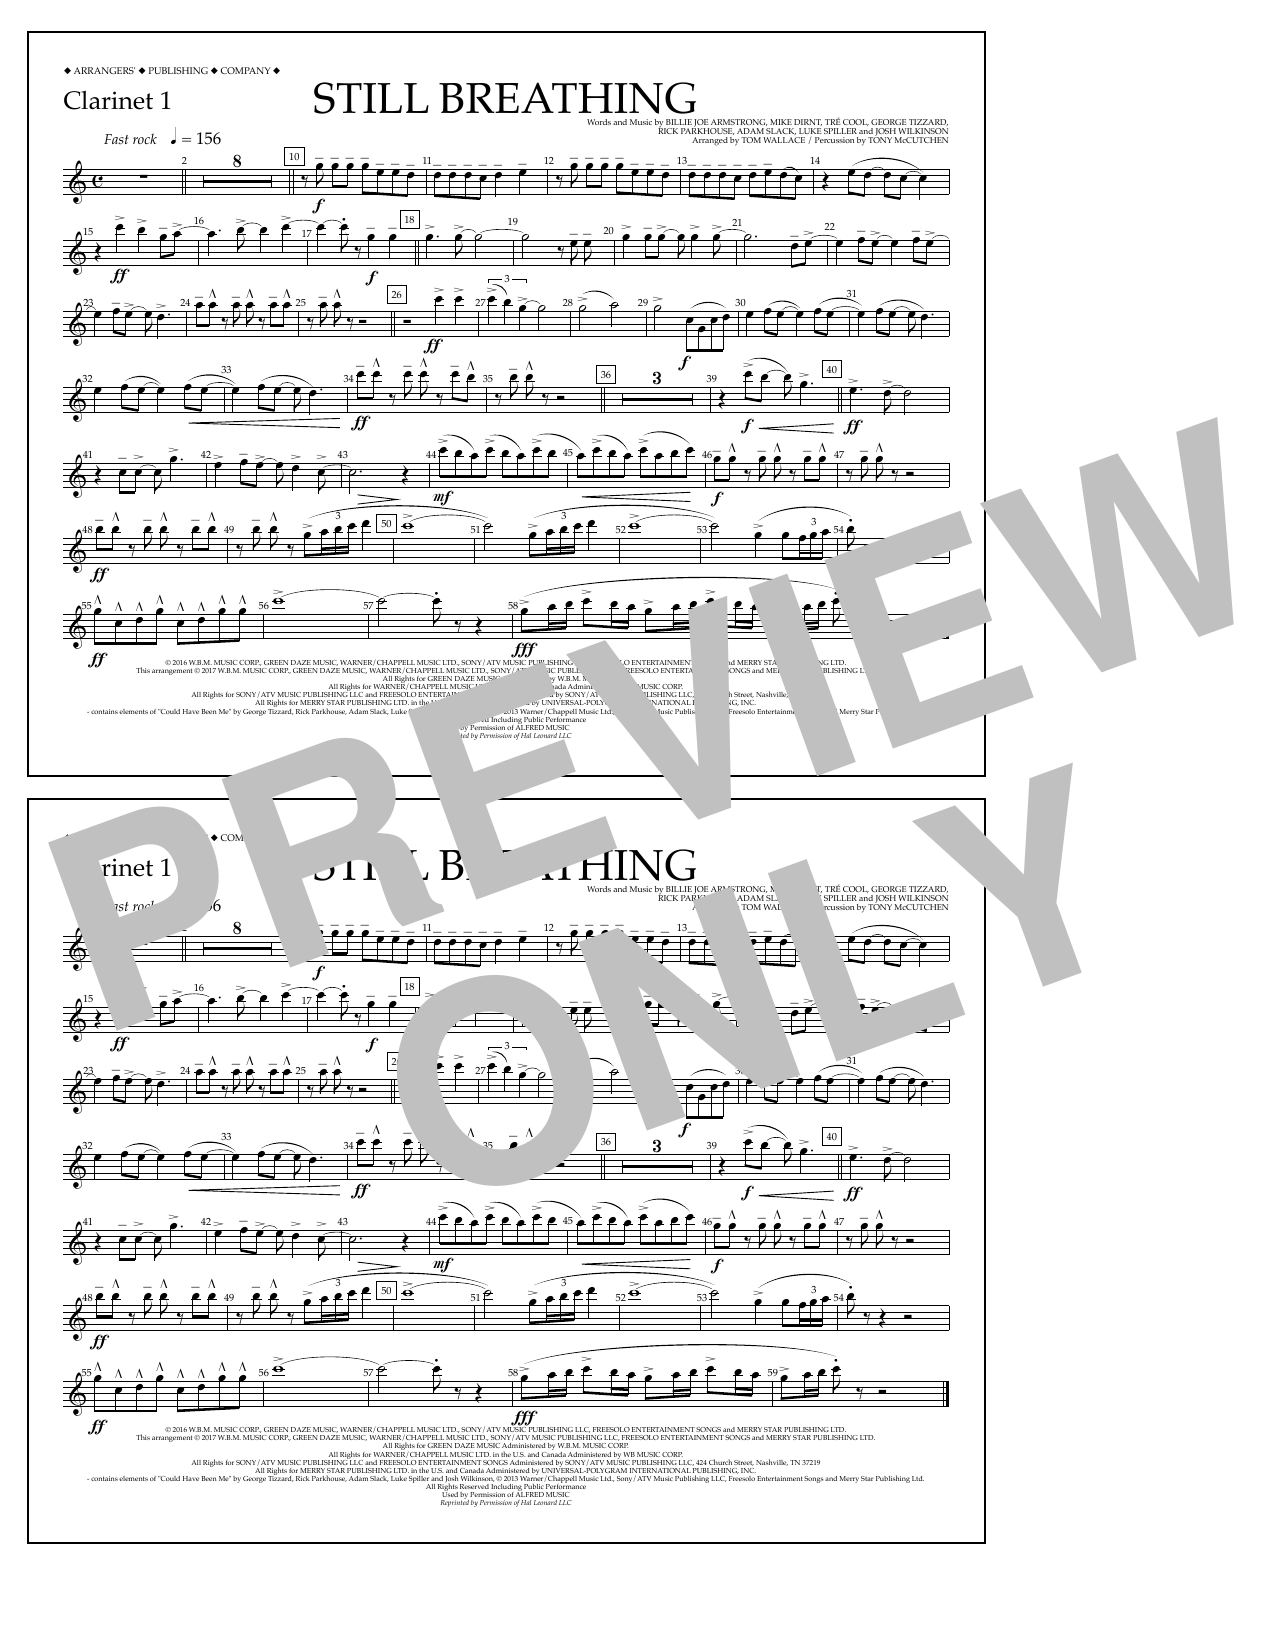 Still Breathing - Clarinet 1 Sheet Music